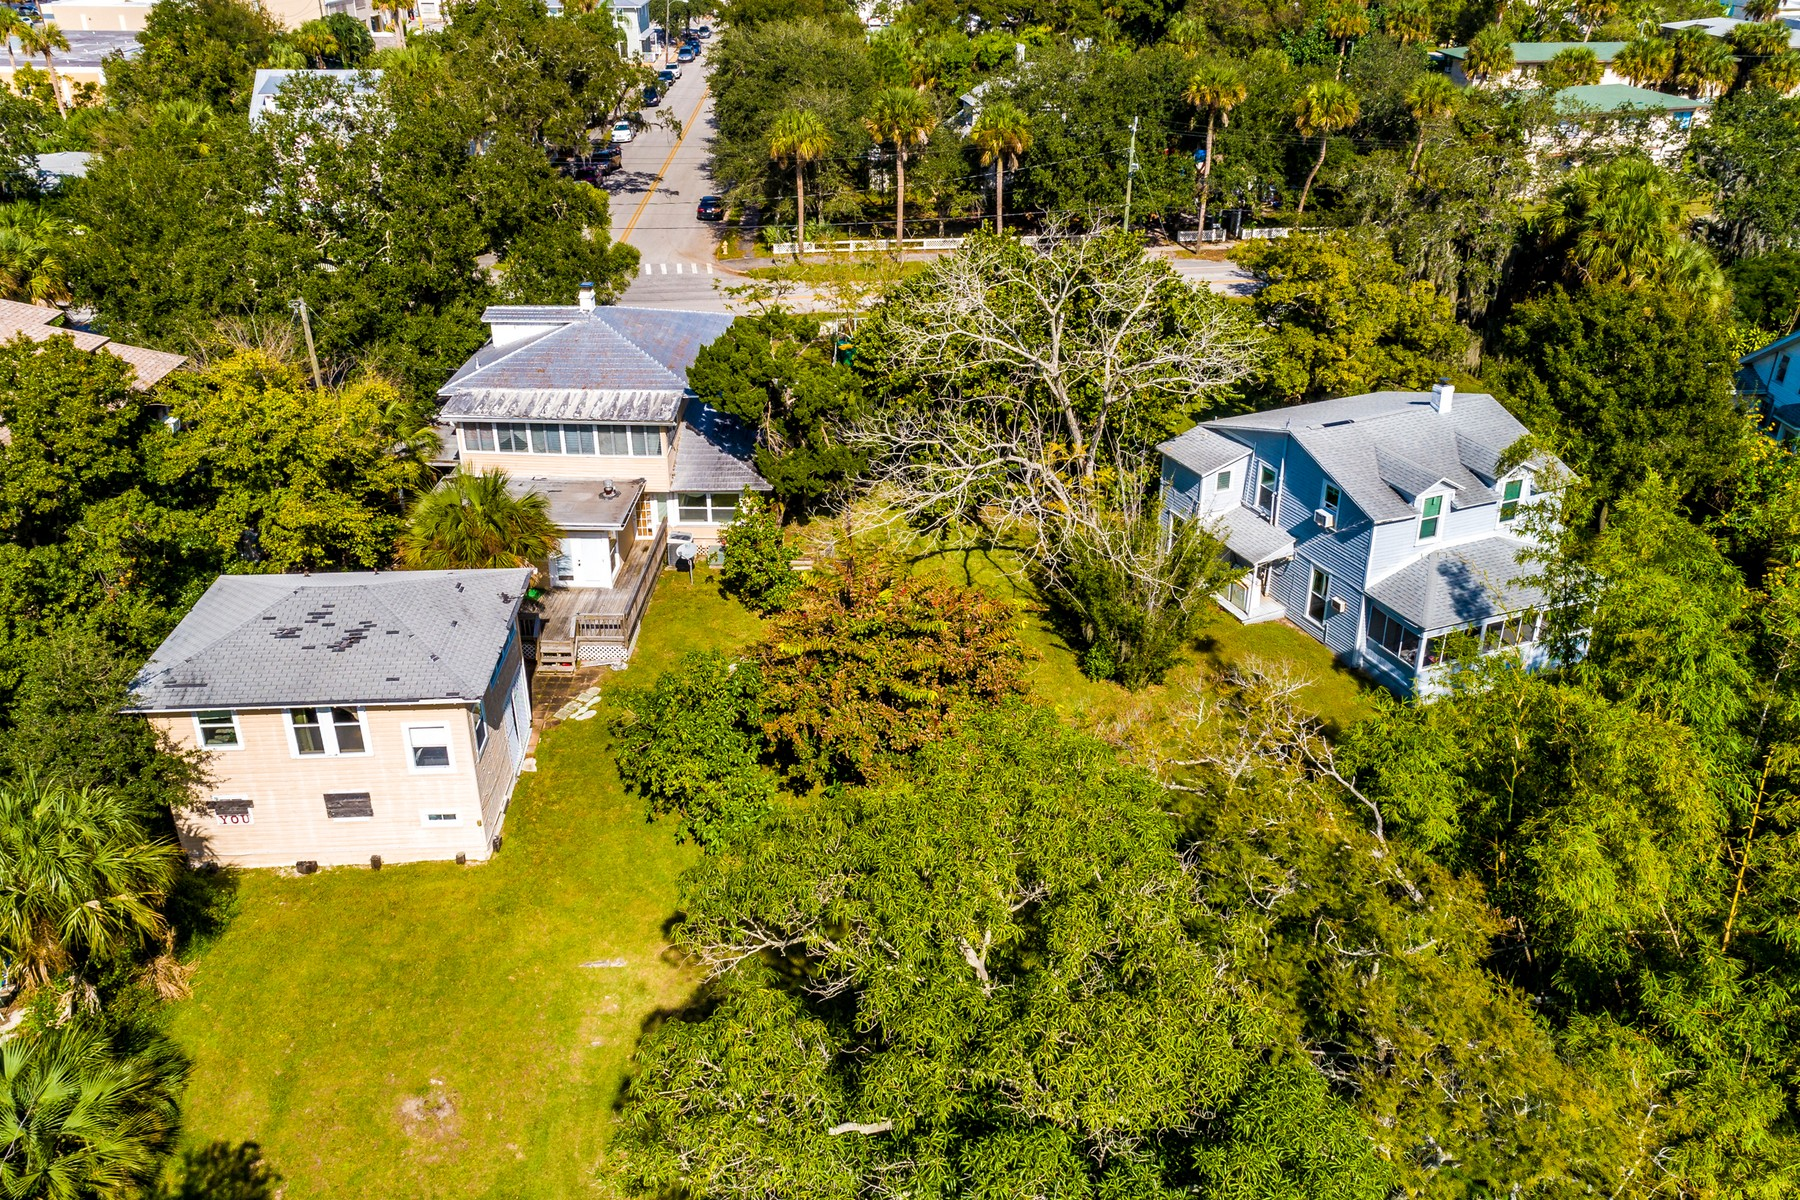 Land for Sale at Two Waterfront Properties in Vibrant, Historic Downtown Melbourne 819-823 E Melbourne Avenue Melbourne, Florida 32901 United States